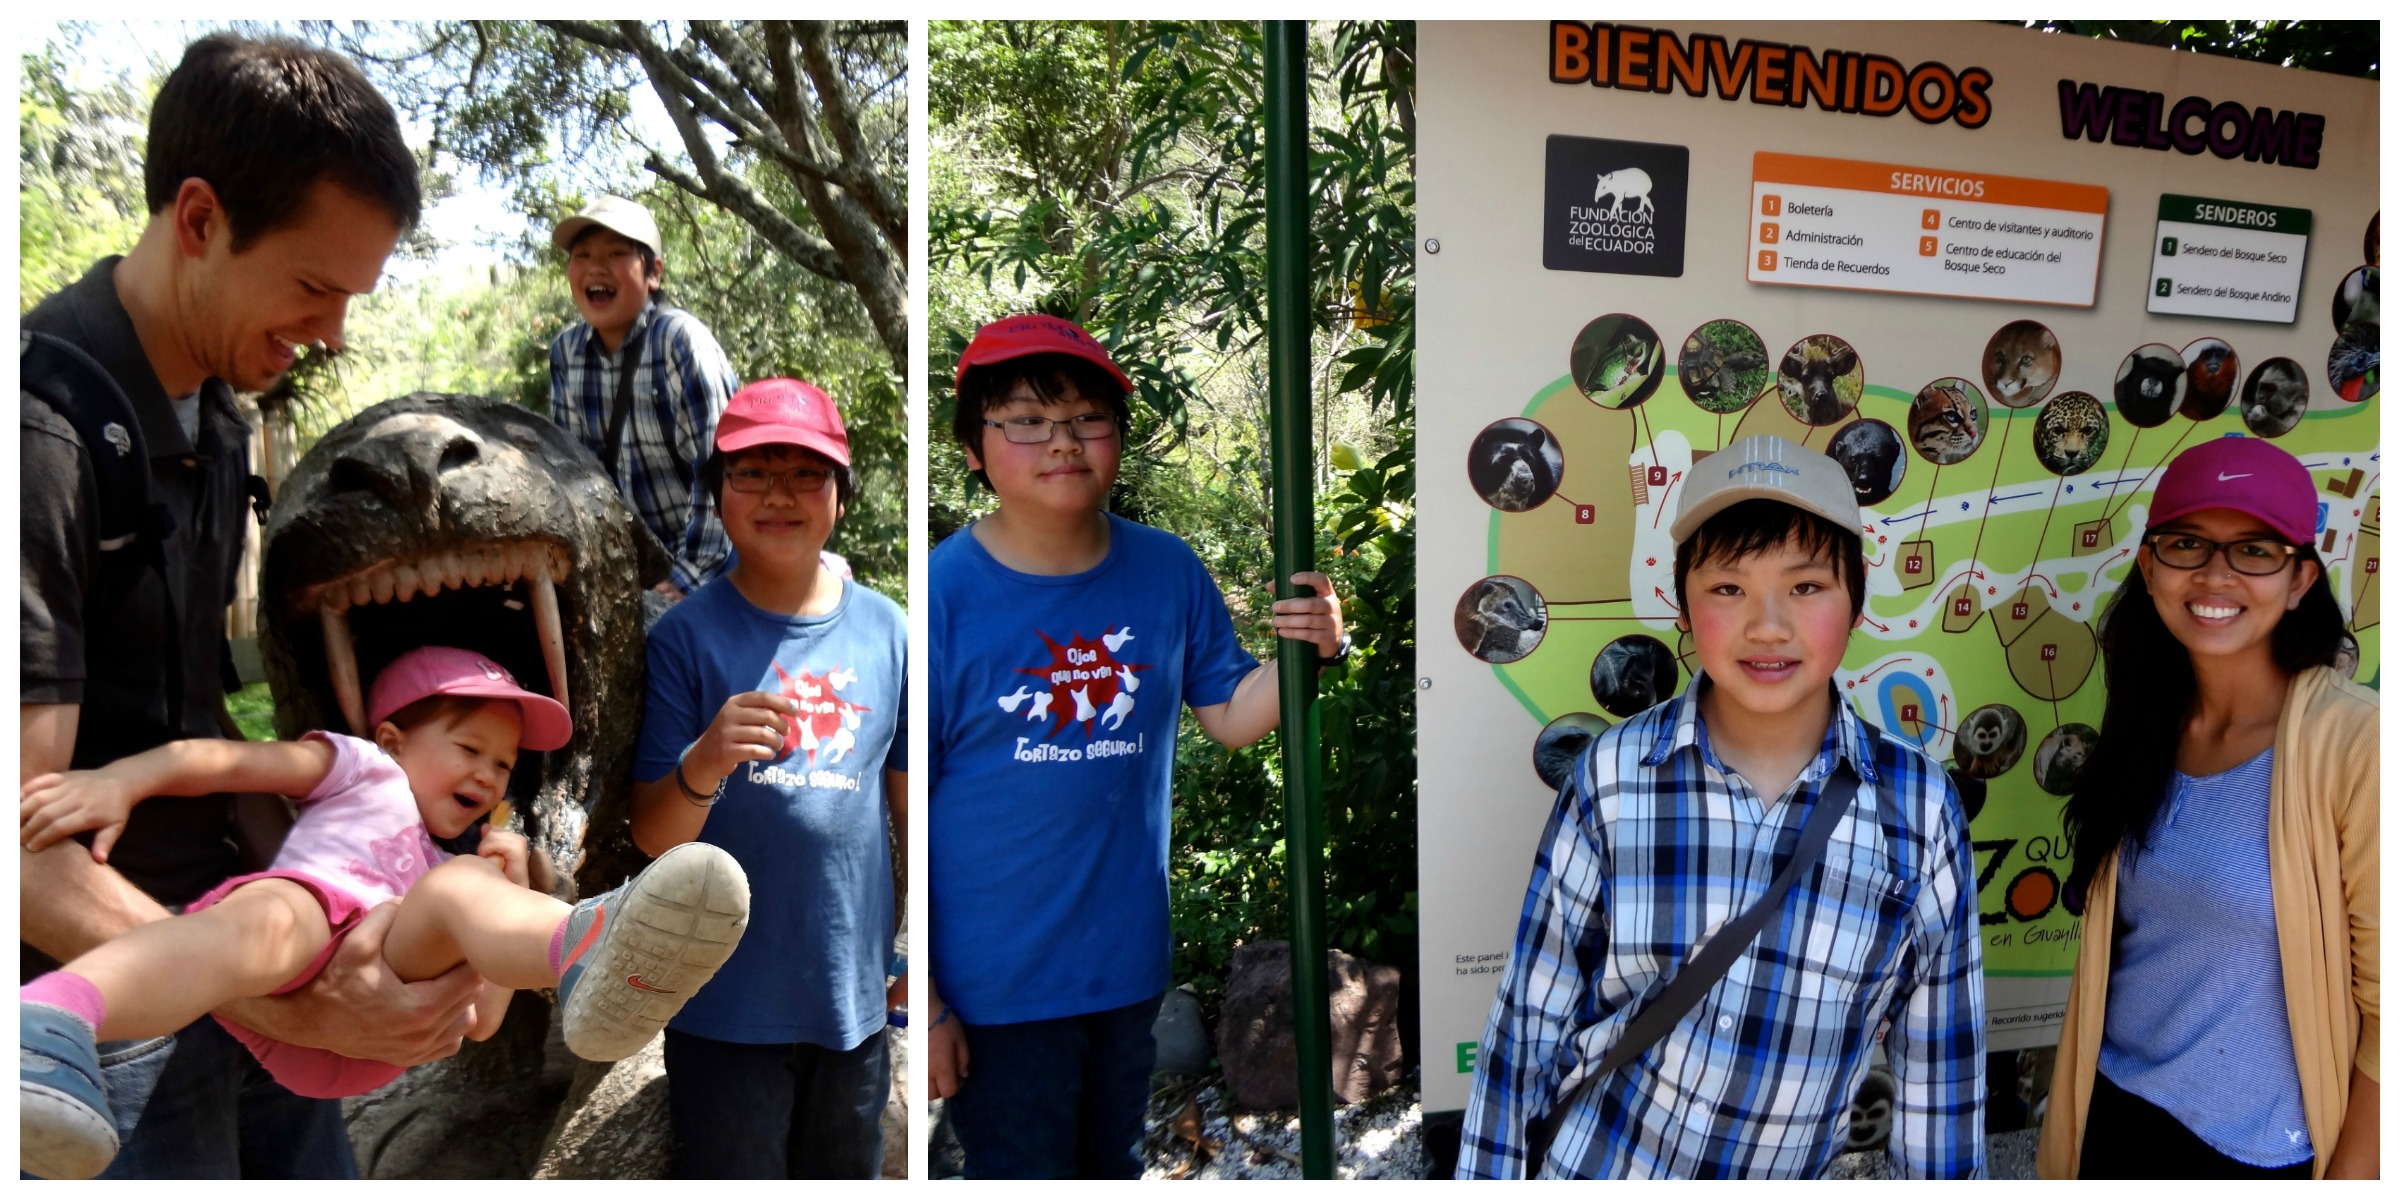 May 2013 - We took Sam & Johnson to the Zoo   in   Guayllabamba, Ecuador.